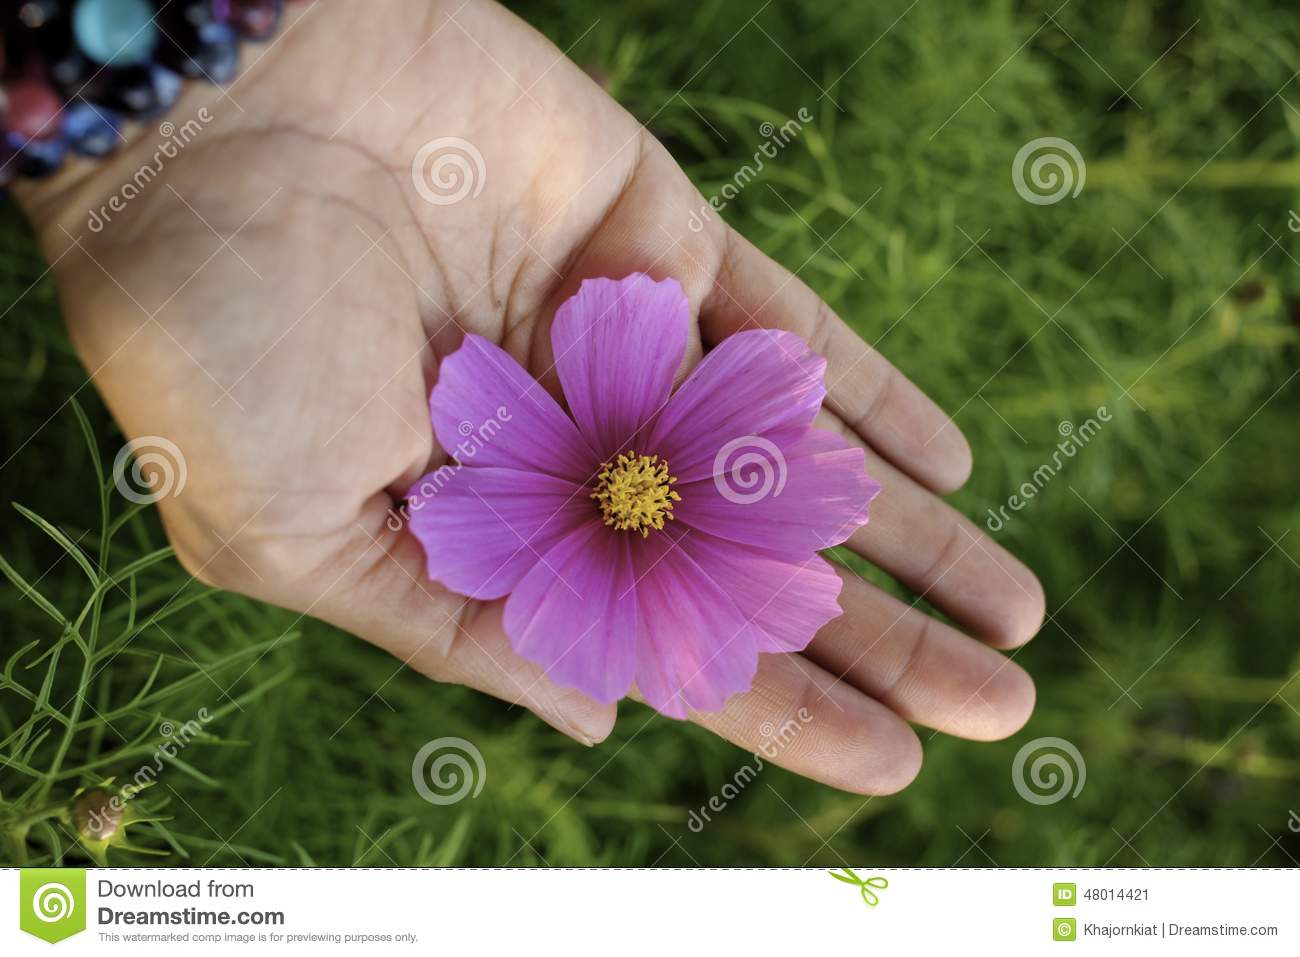 Pink cosmos flower on hand stock image image of bipinnatus 48014421 pink cosmos flower on hand izmirmasajfo Gallery